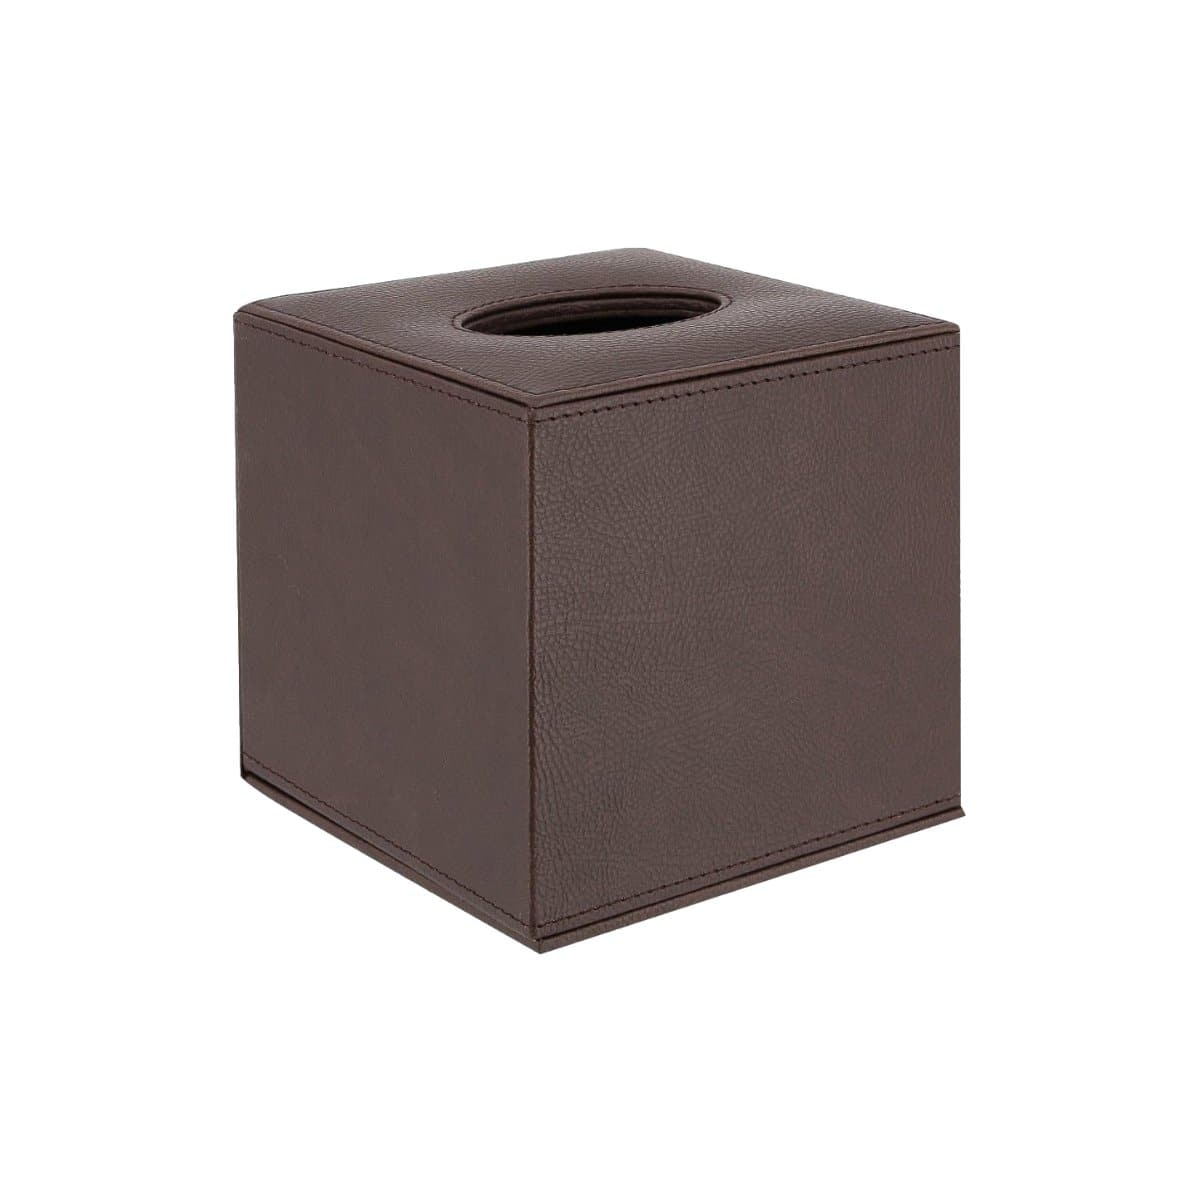 Konrad S. Tissue Box Cube, 13 x 13 x 13cm, PU Leather, Brown